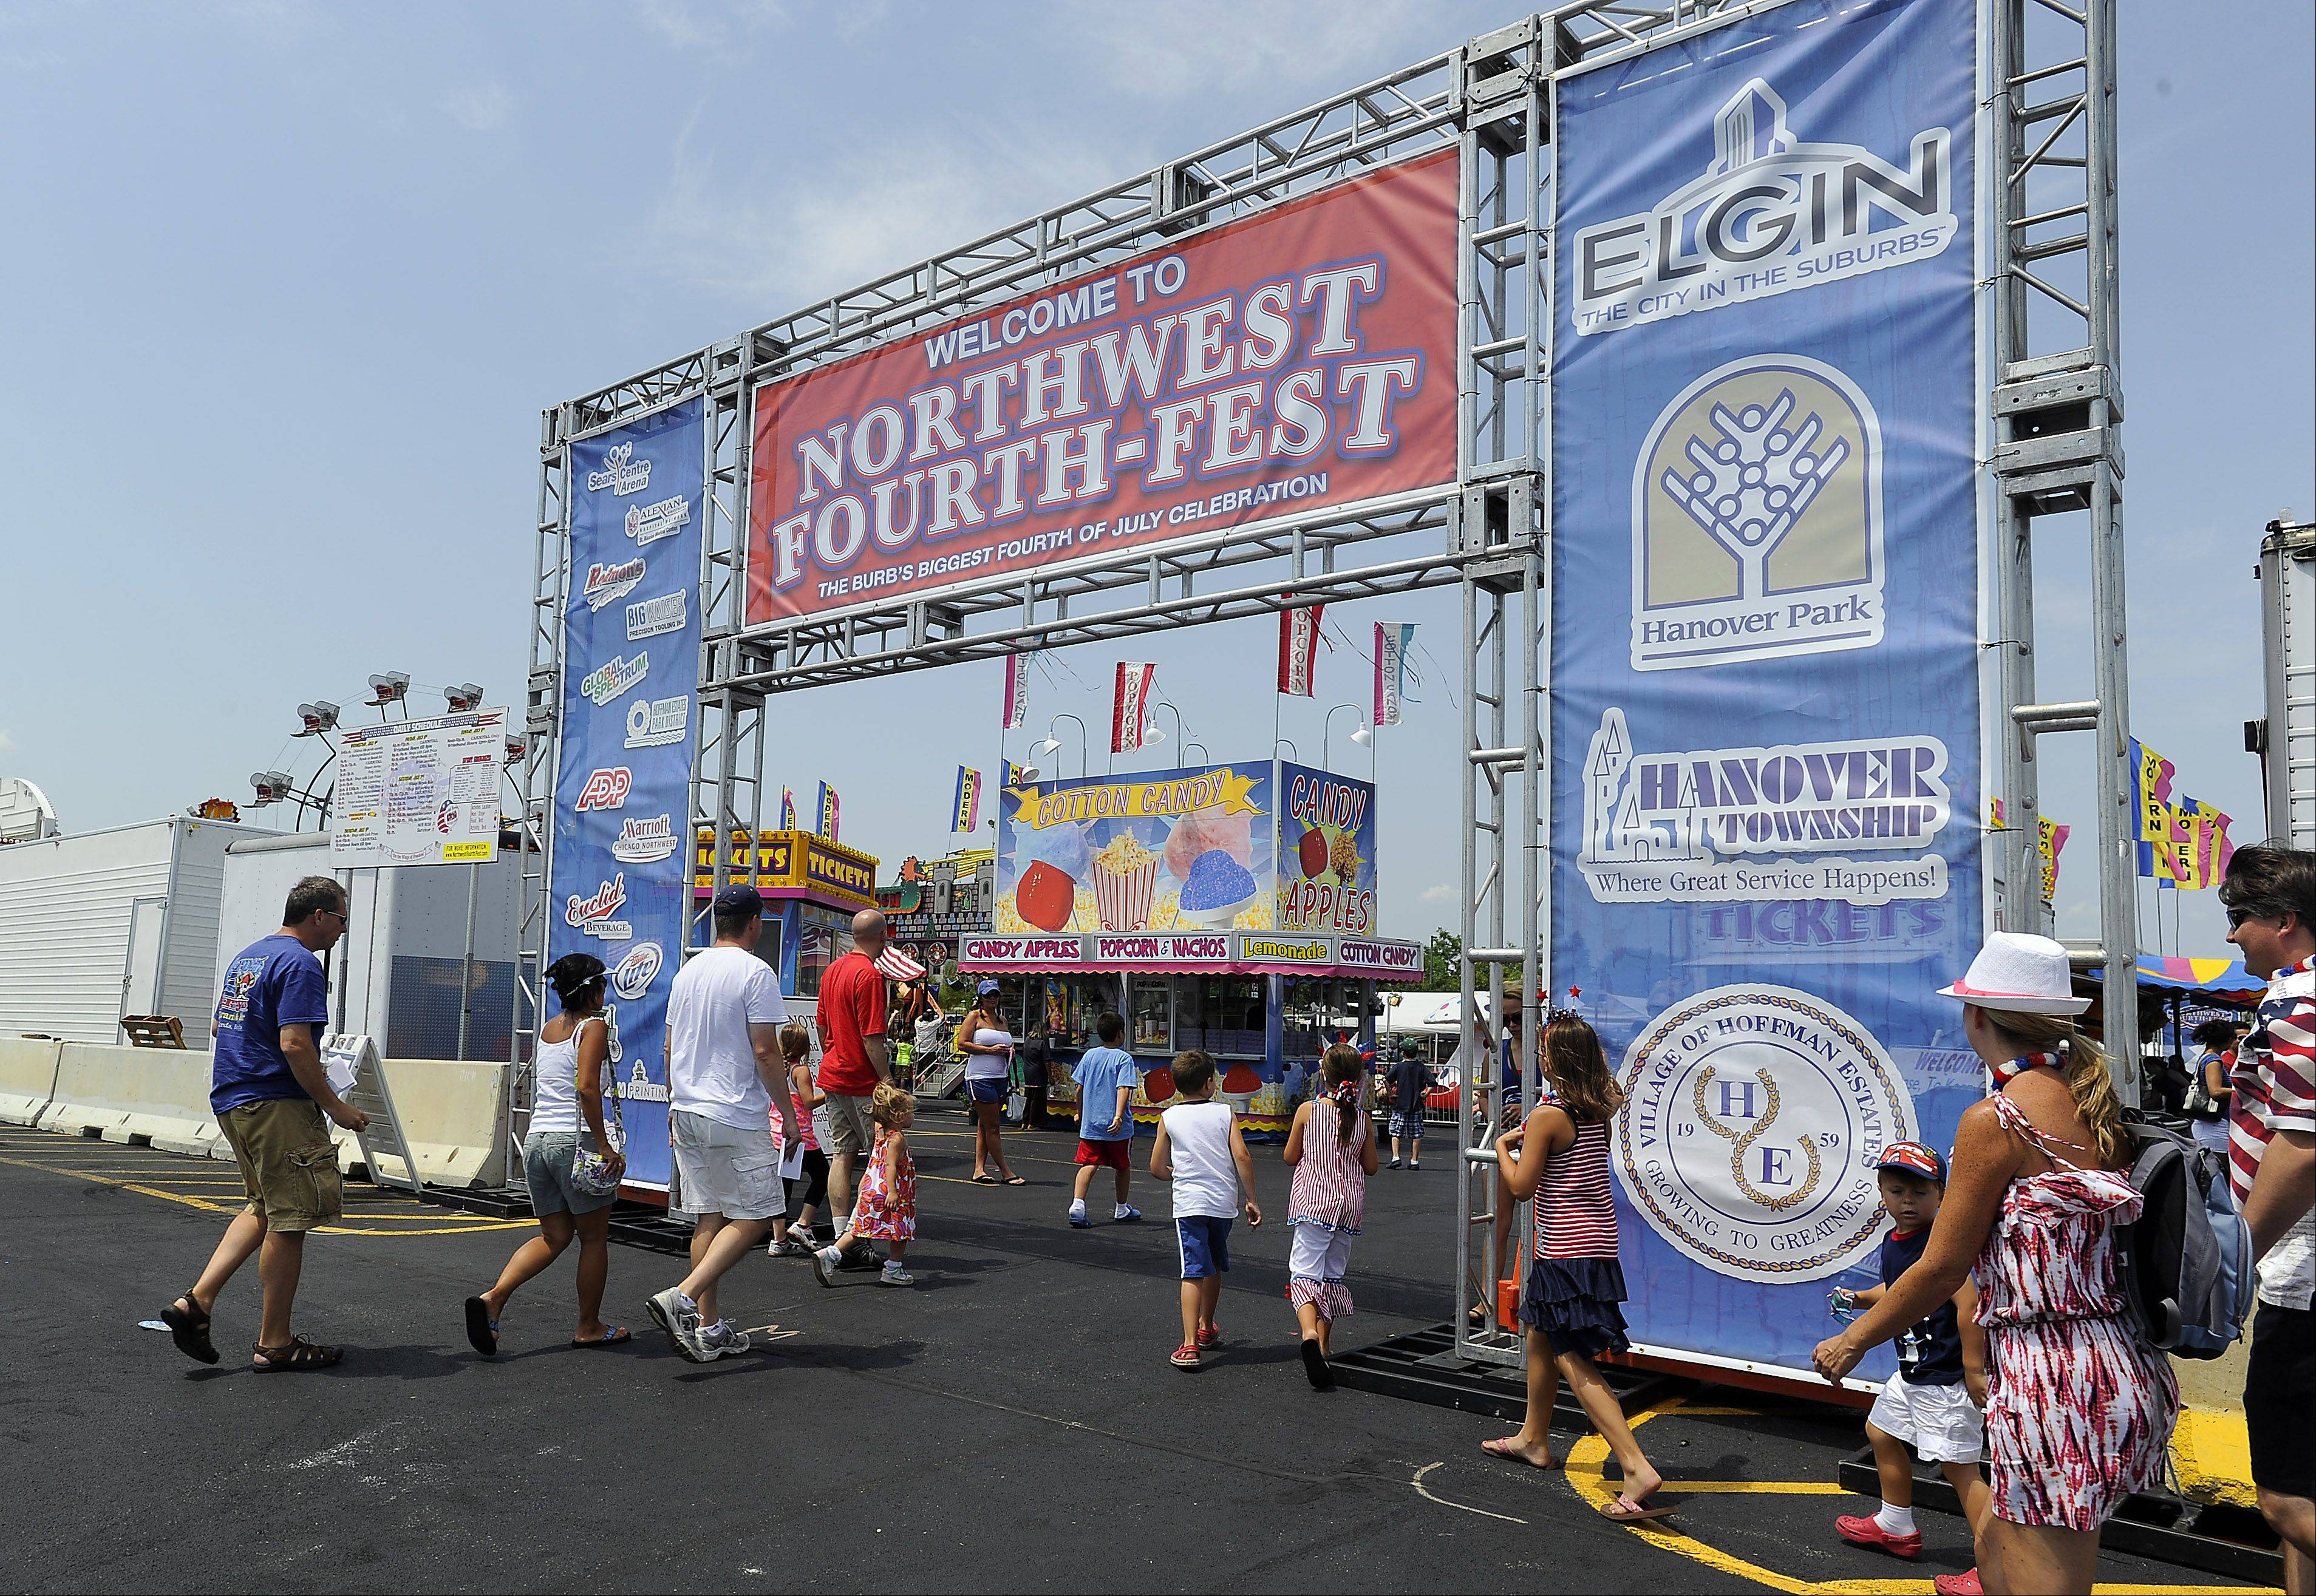 Northwest Fourth-Fest continues now through Sunday on the grounds of the Sears Centre Arena in Hoffman Estates,